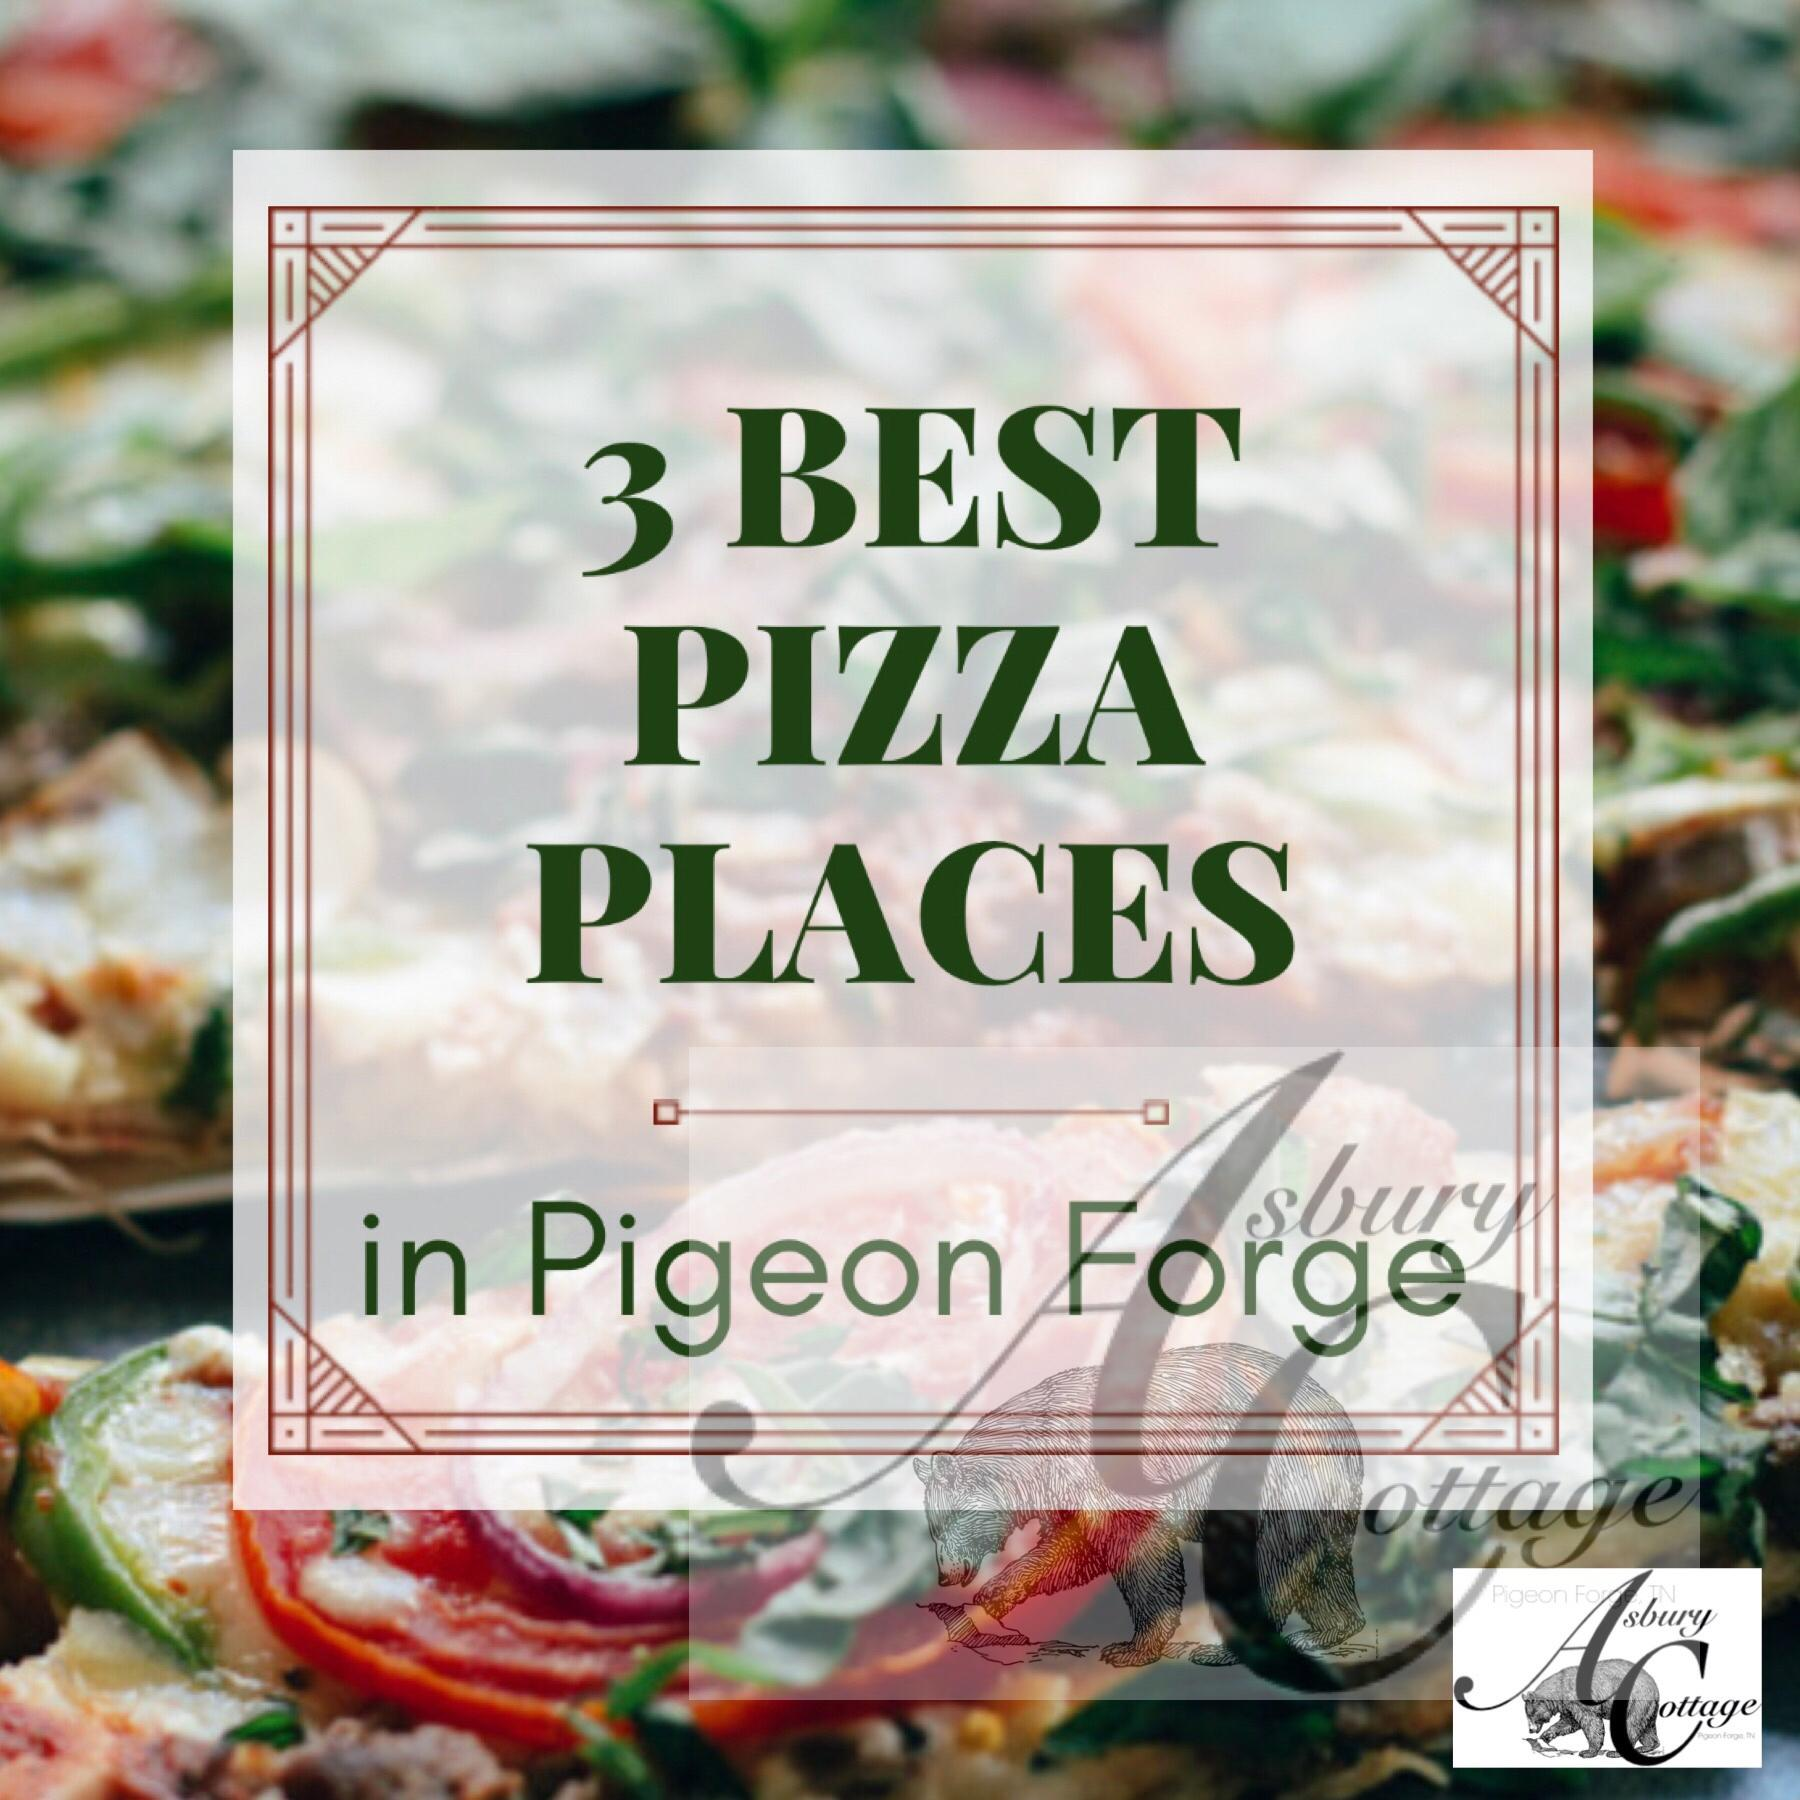 3 Best Pizza Restaurants In Pigeon Forge, TN